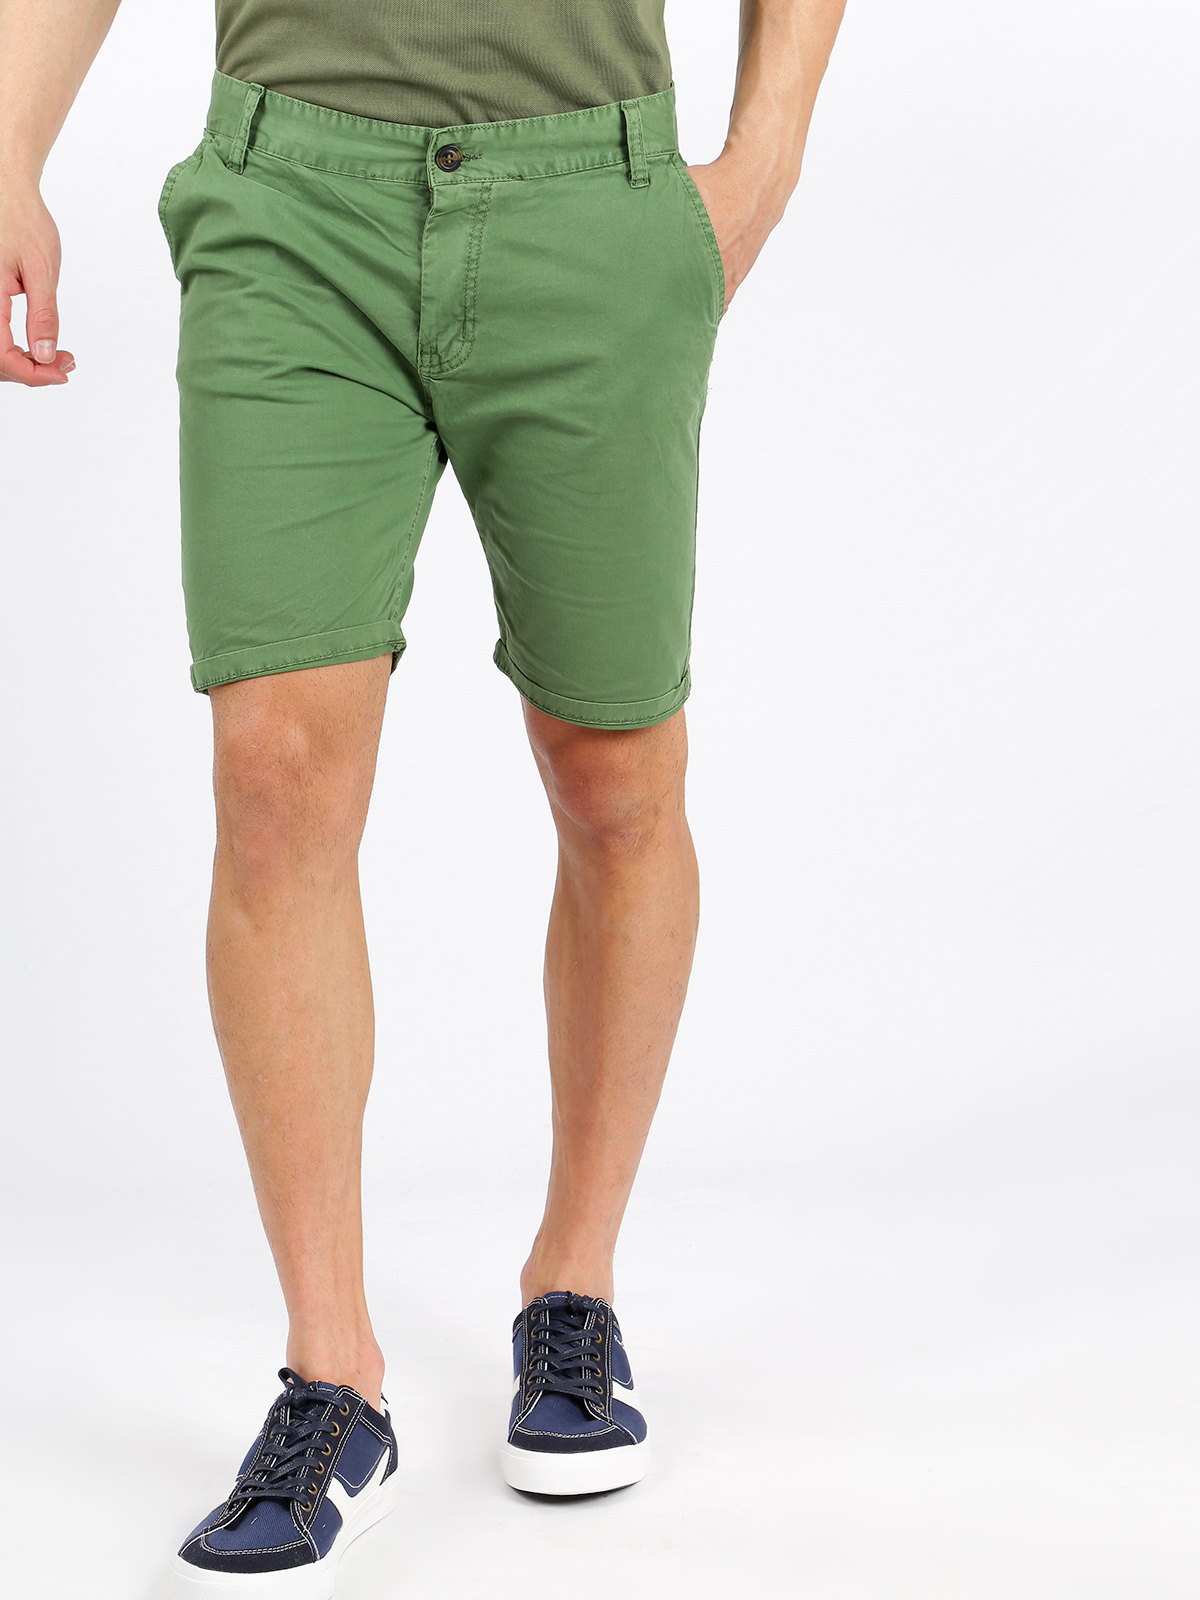 Cotton Men's Shorts